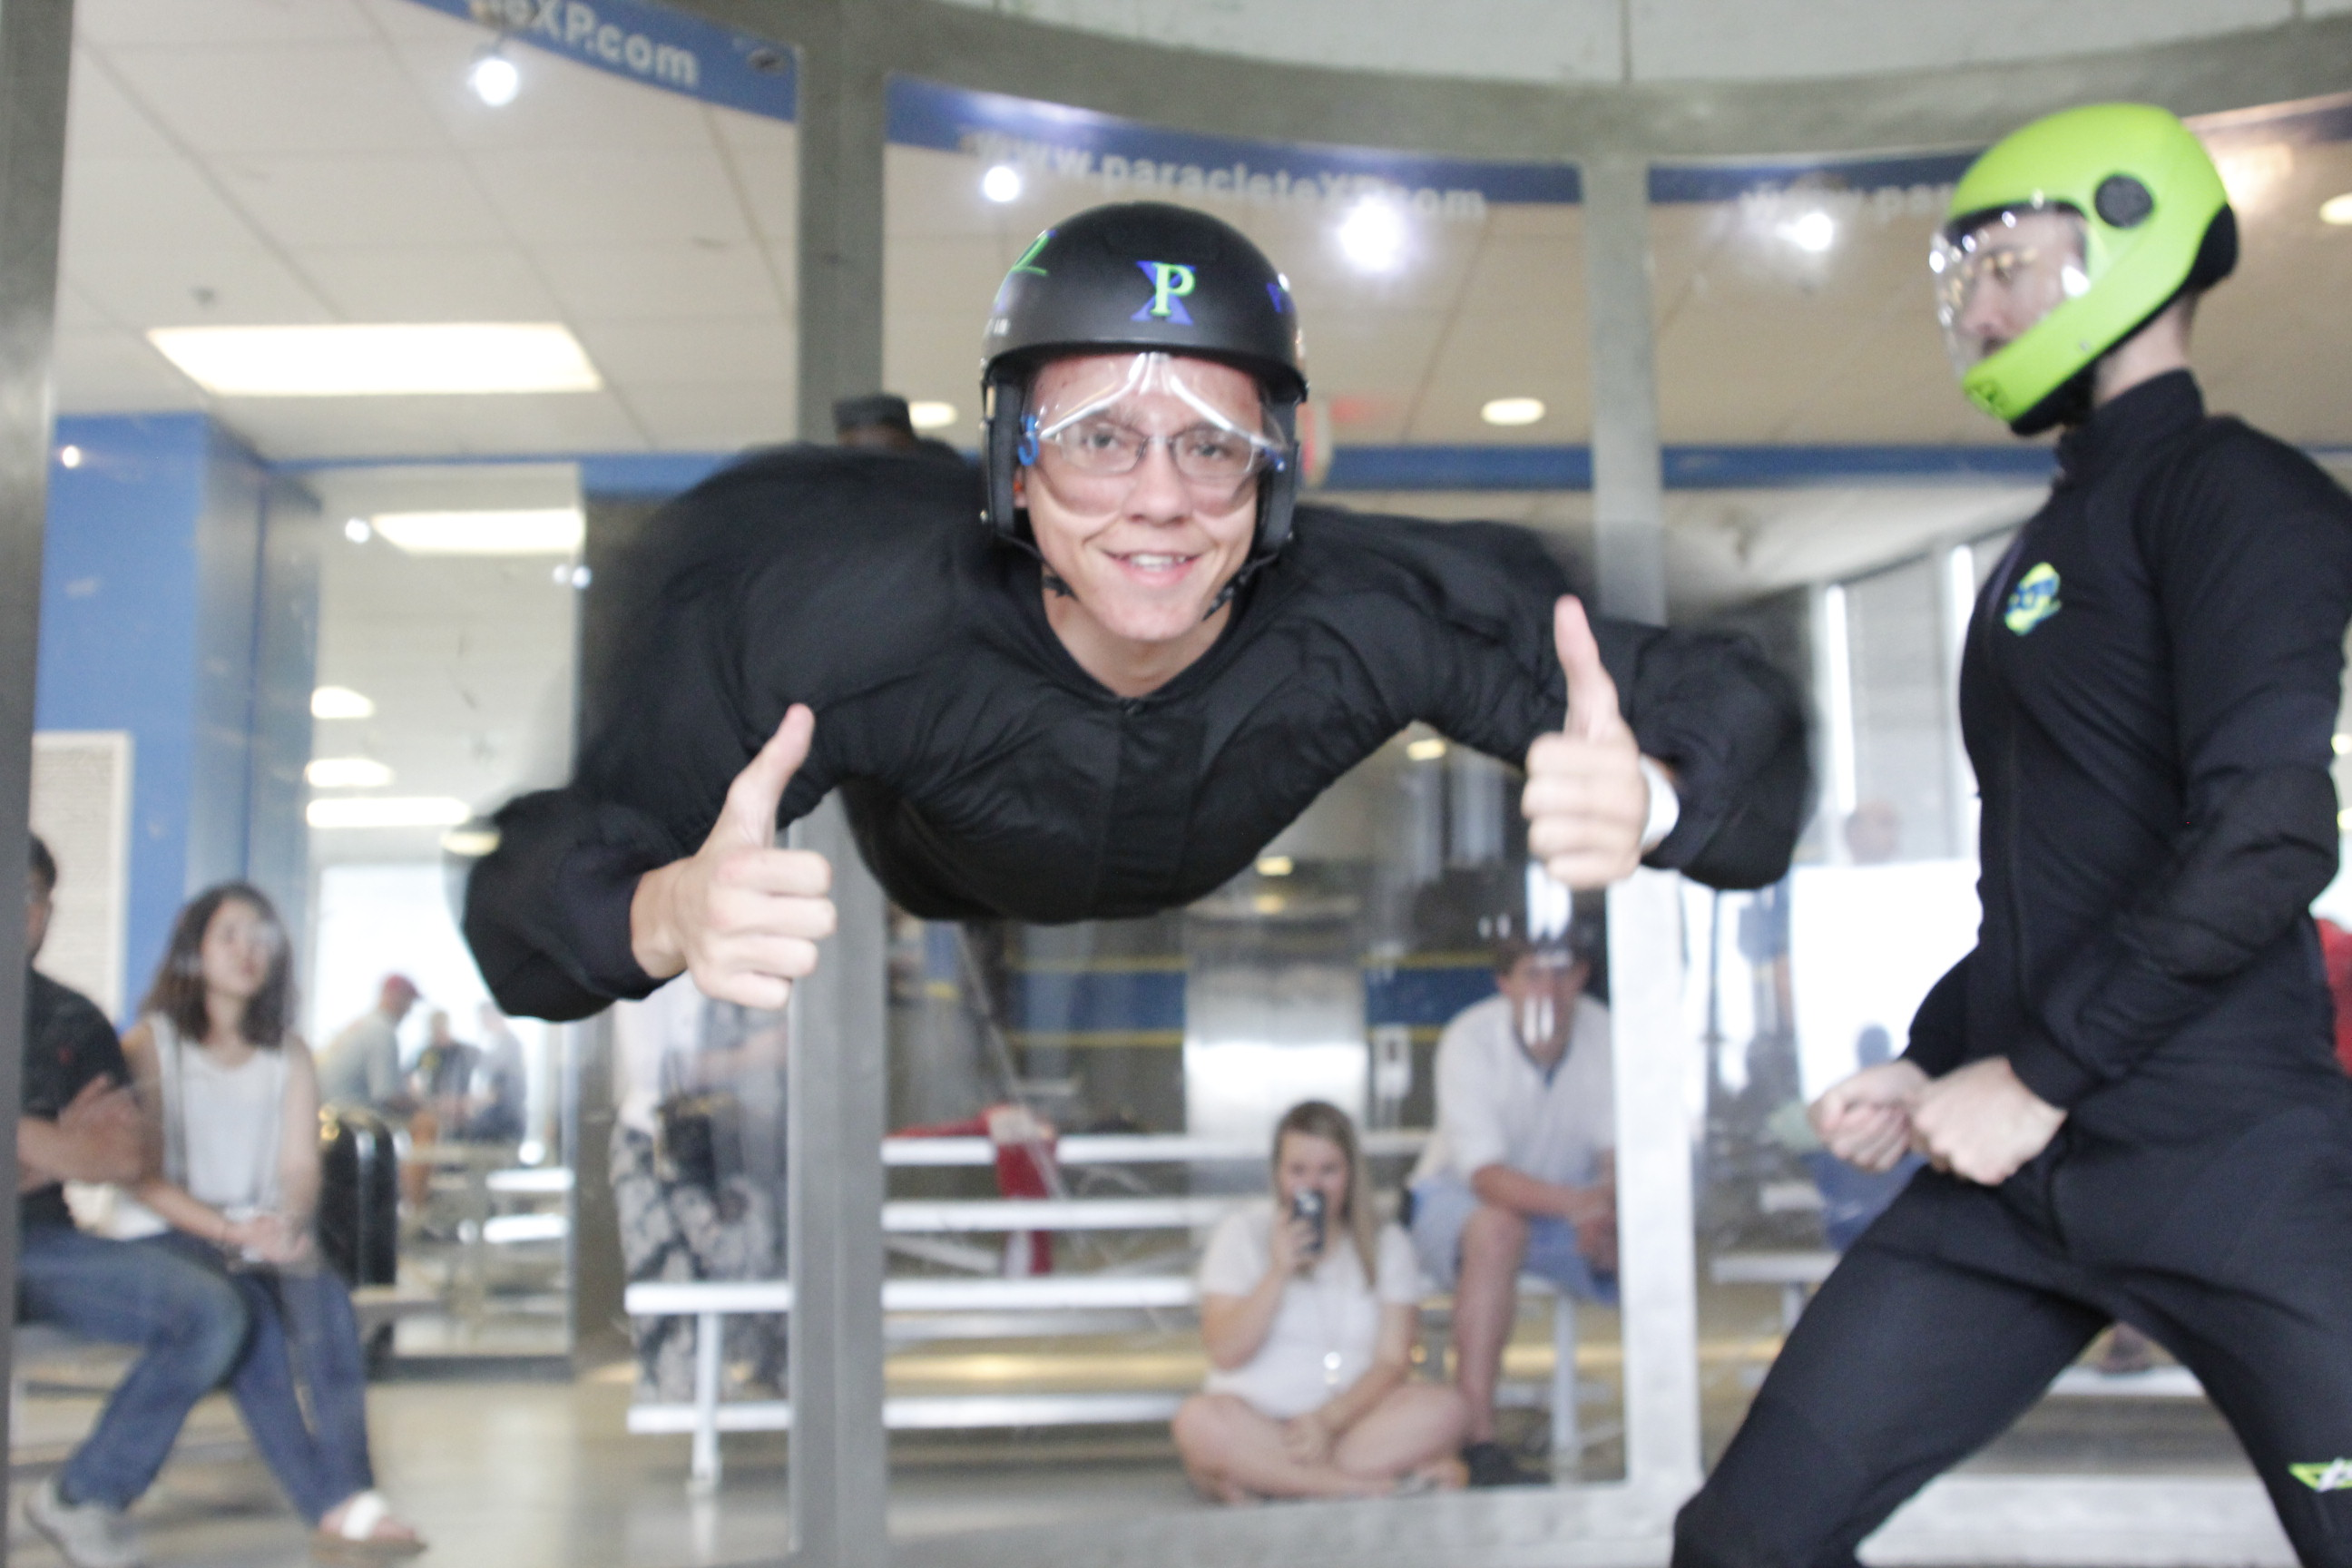 A man gives a thumbs up while flying at Paraclete XP Indoor Skydiving